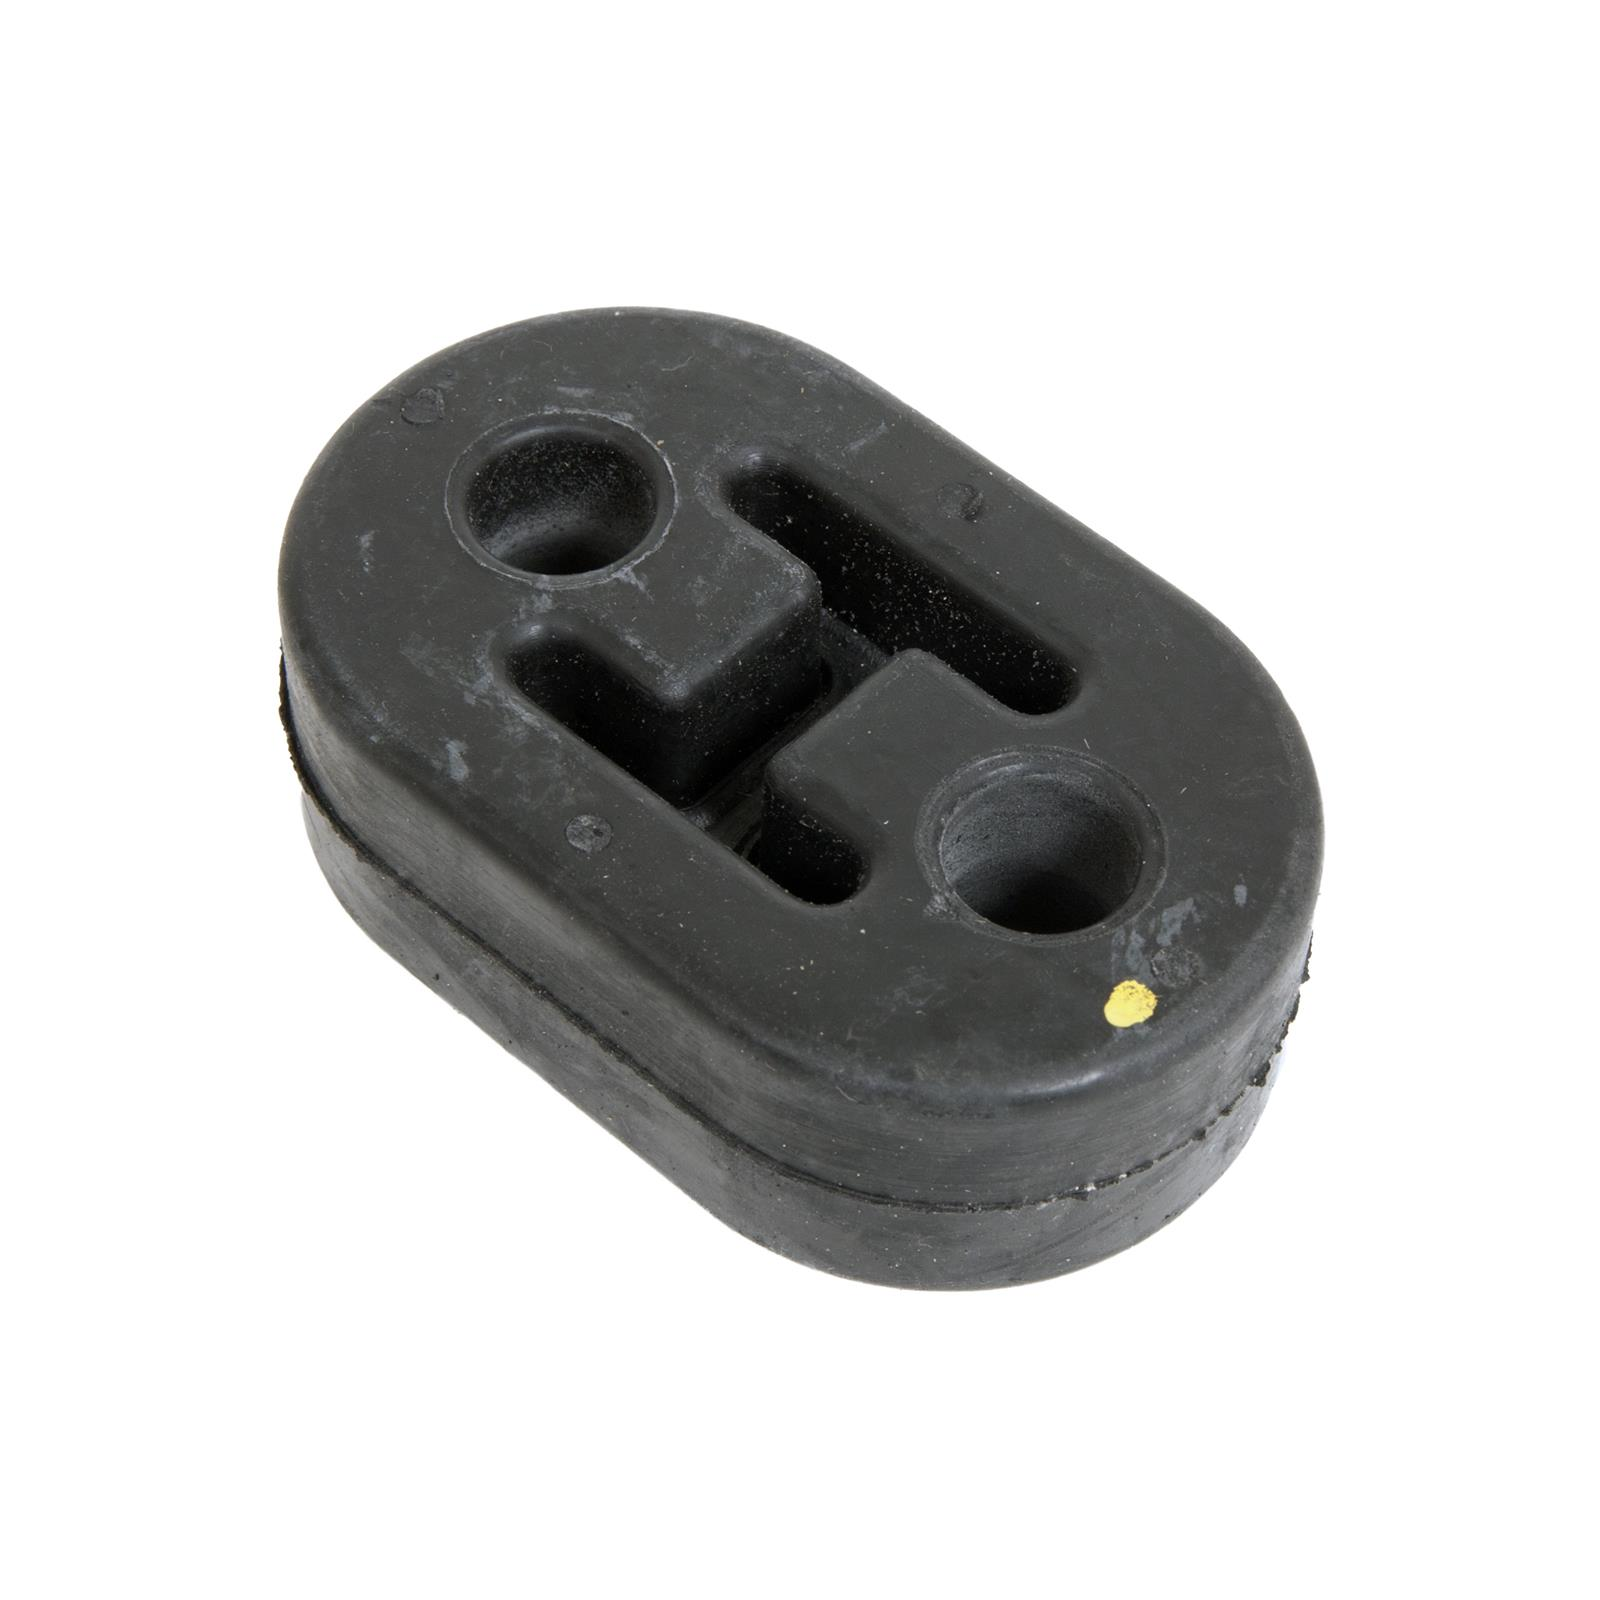 Walker Replacement Exhaust Insulators 35460 - Free Shipping on Orders Over  $99 at Summit Racing